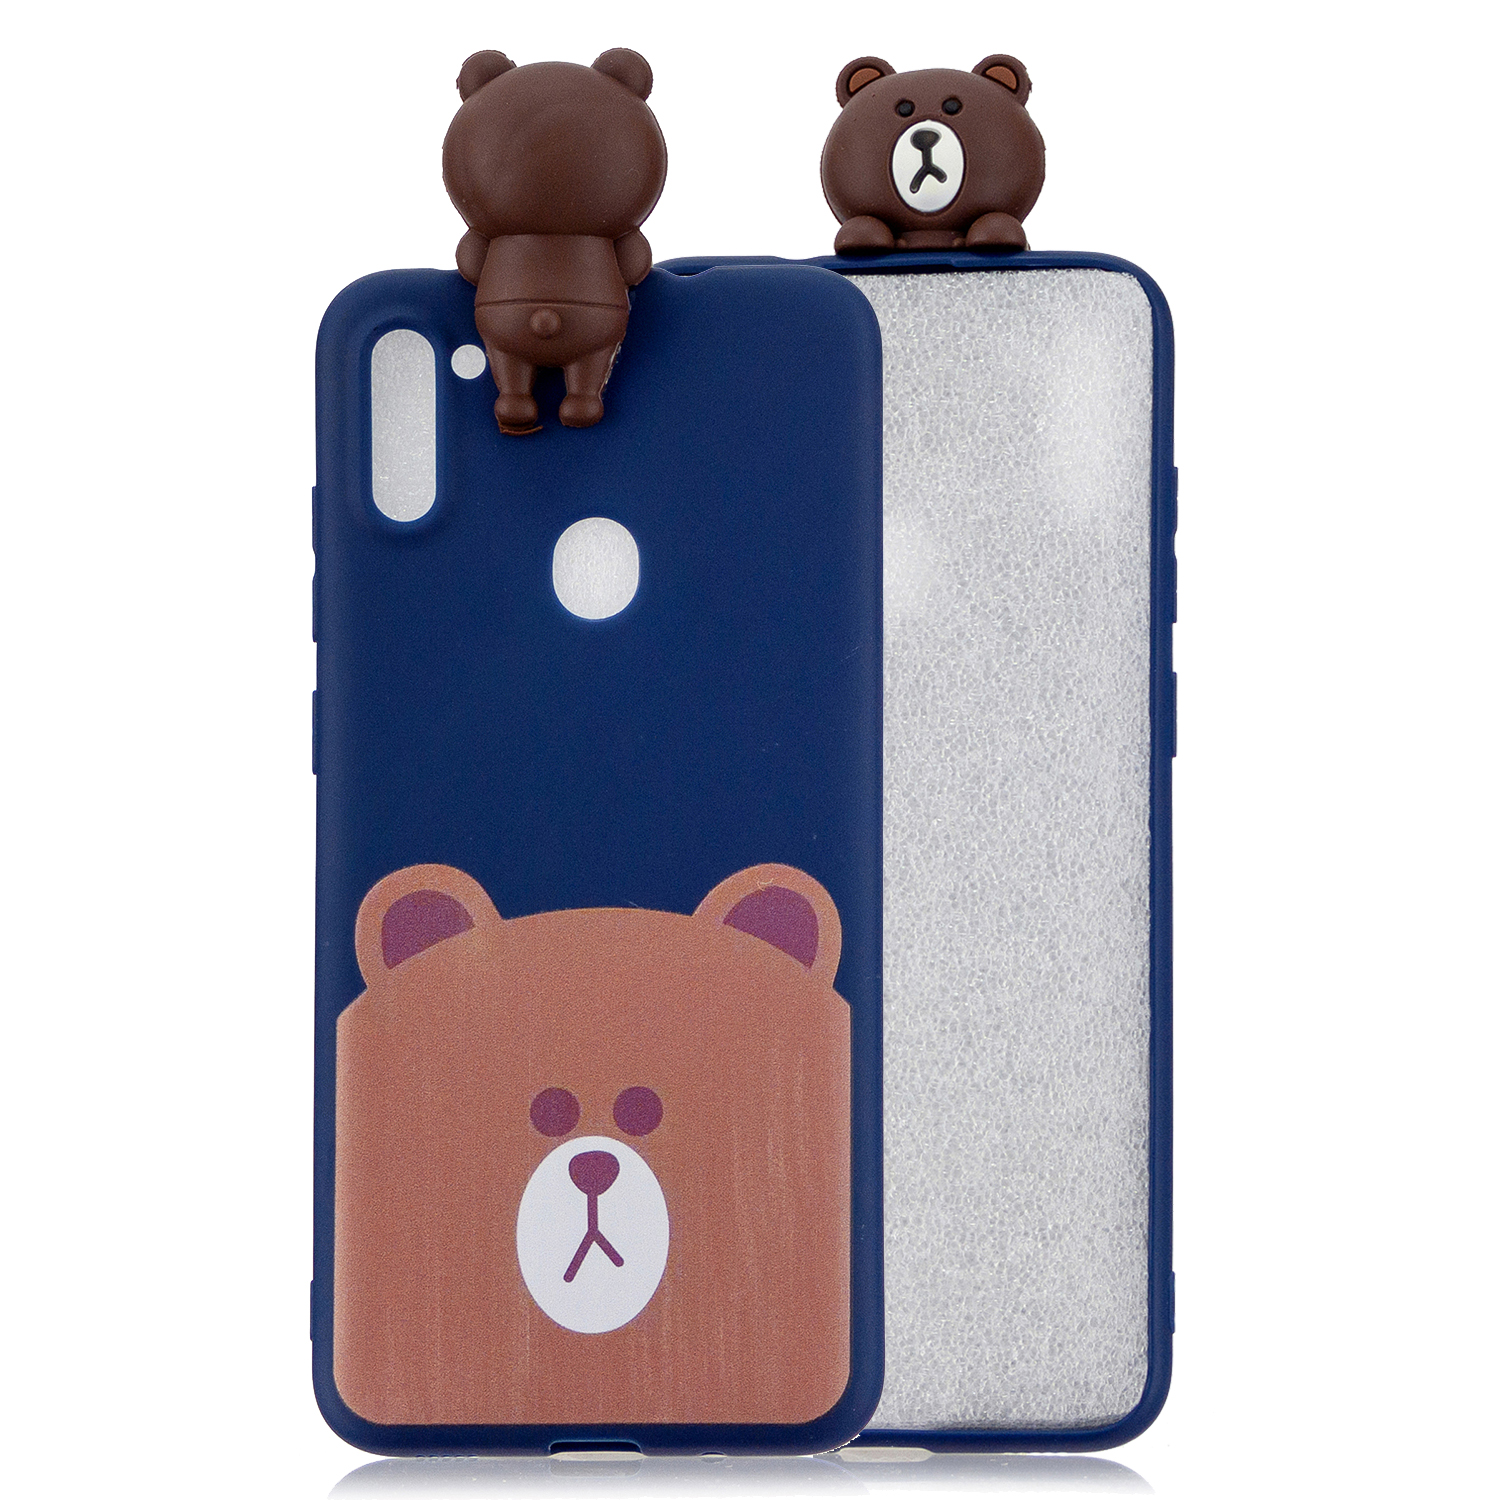 For Samsung A11 Soft TPU Back Cover 3D Cartoon Painting Mobile Phone Case Shell Little bear